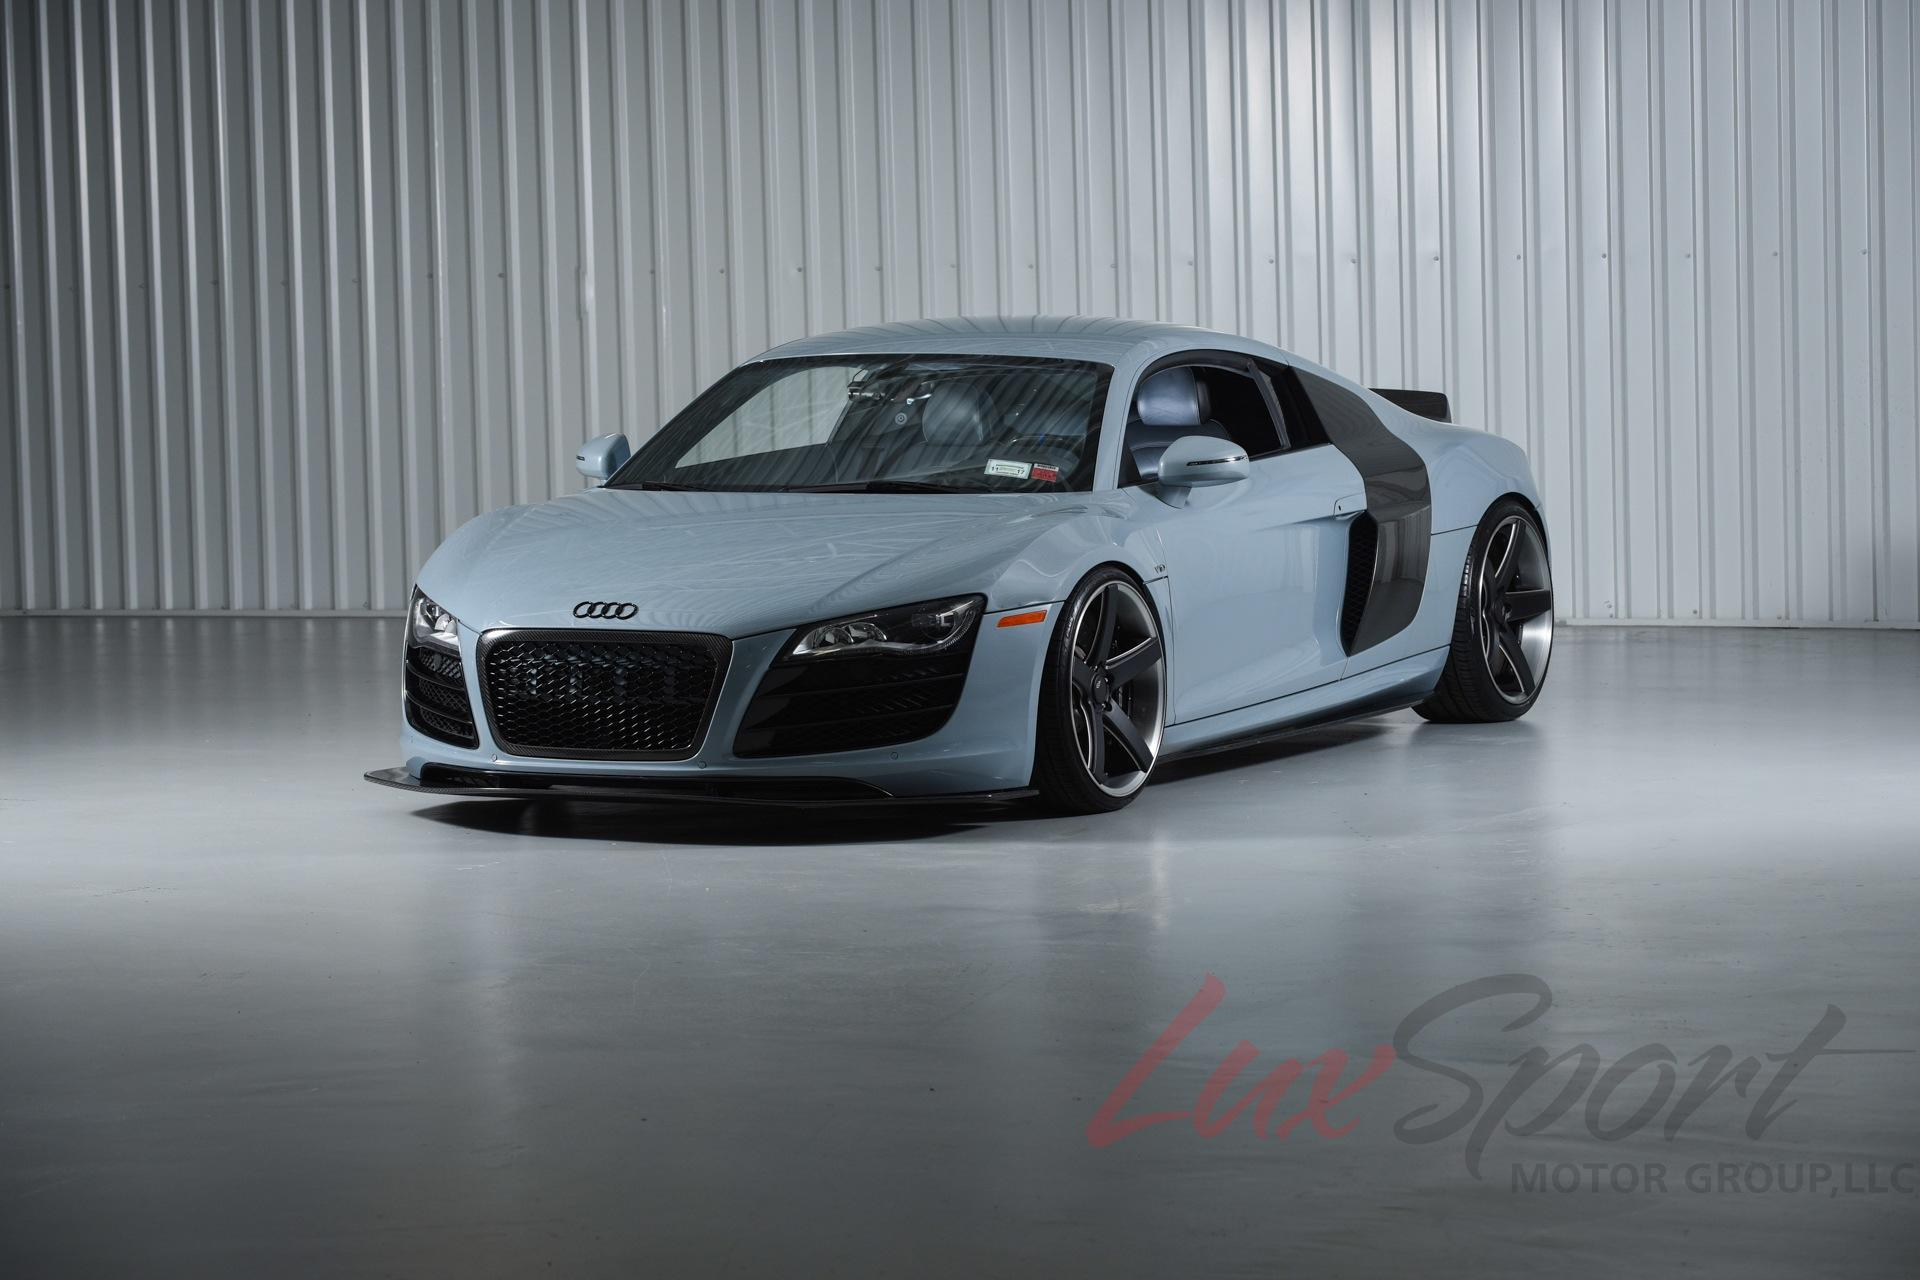 2010 audi r8 v10 coupe 5 2 quattro. Black Bedroom Furniture Sets. Home Design Ideas